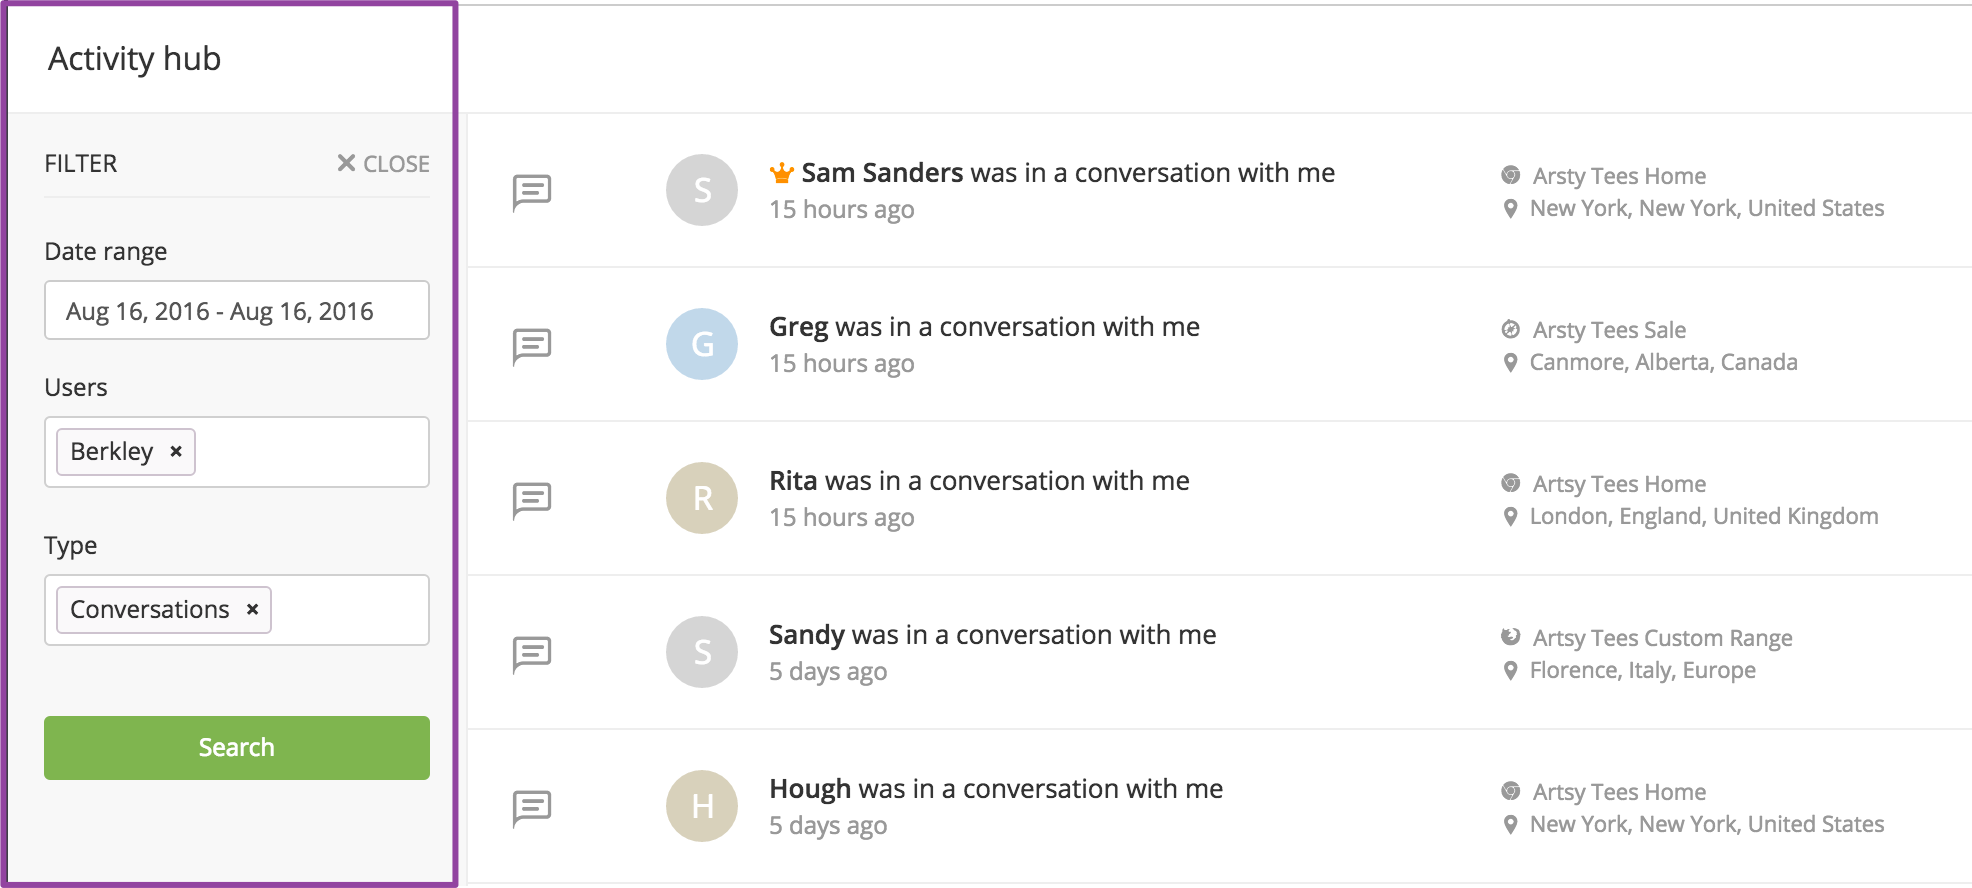 Viewing previous conversations - Filtering